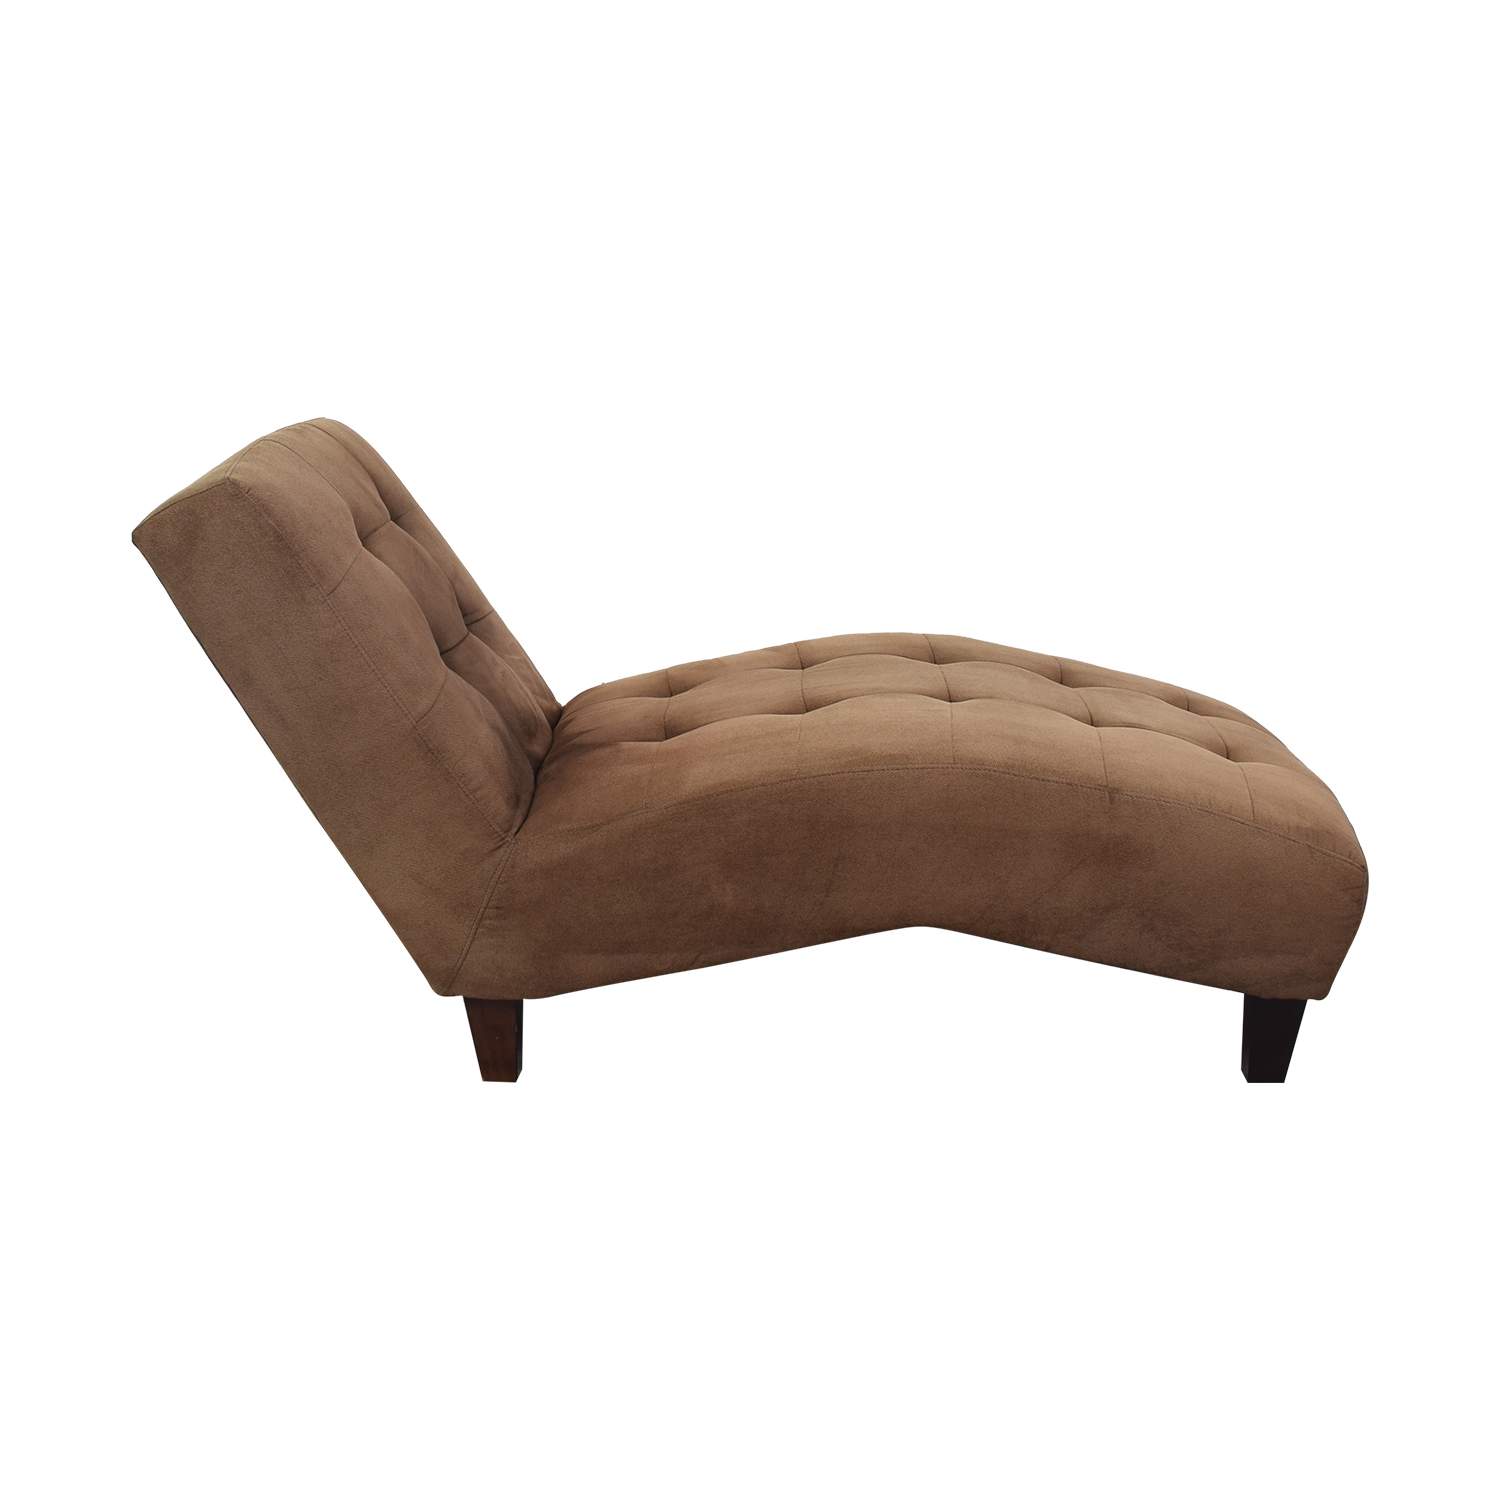 Macy's Arched Chaise Lounge sale